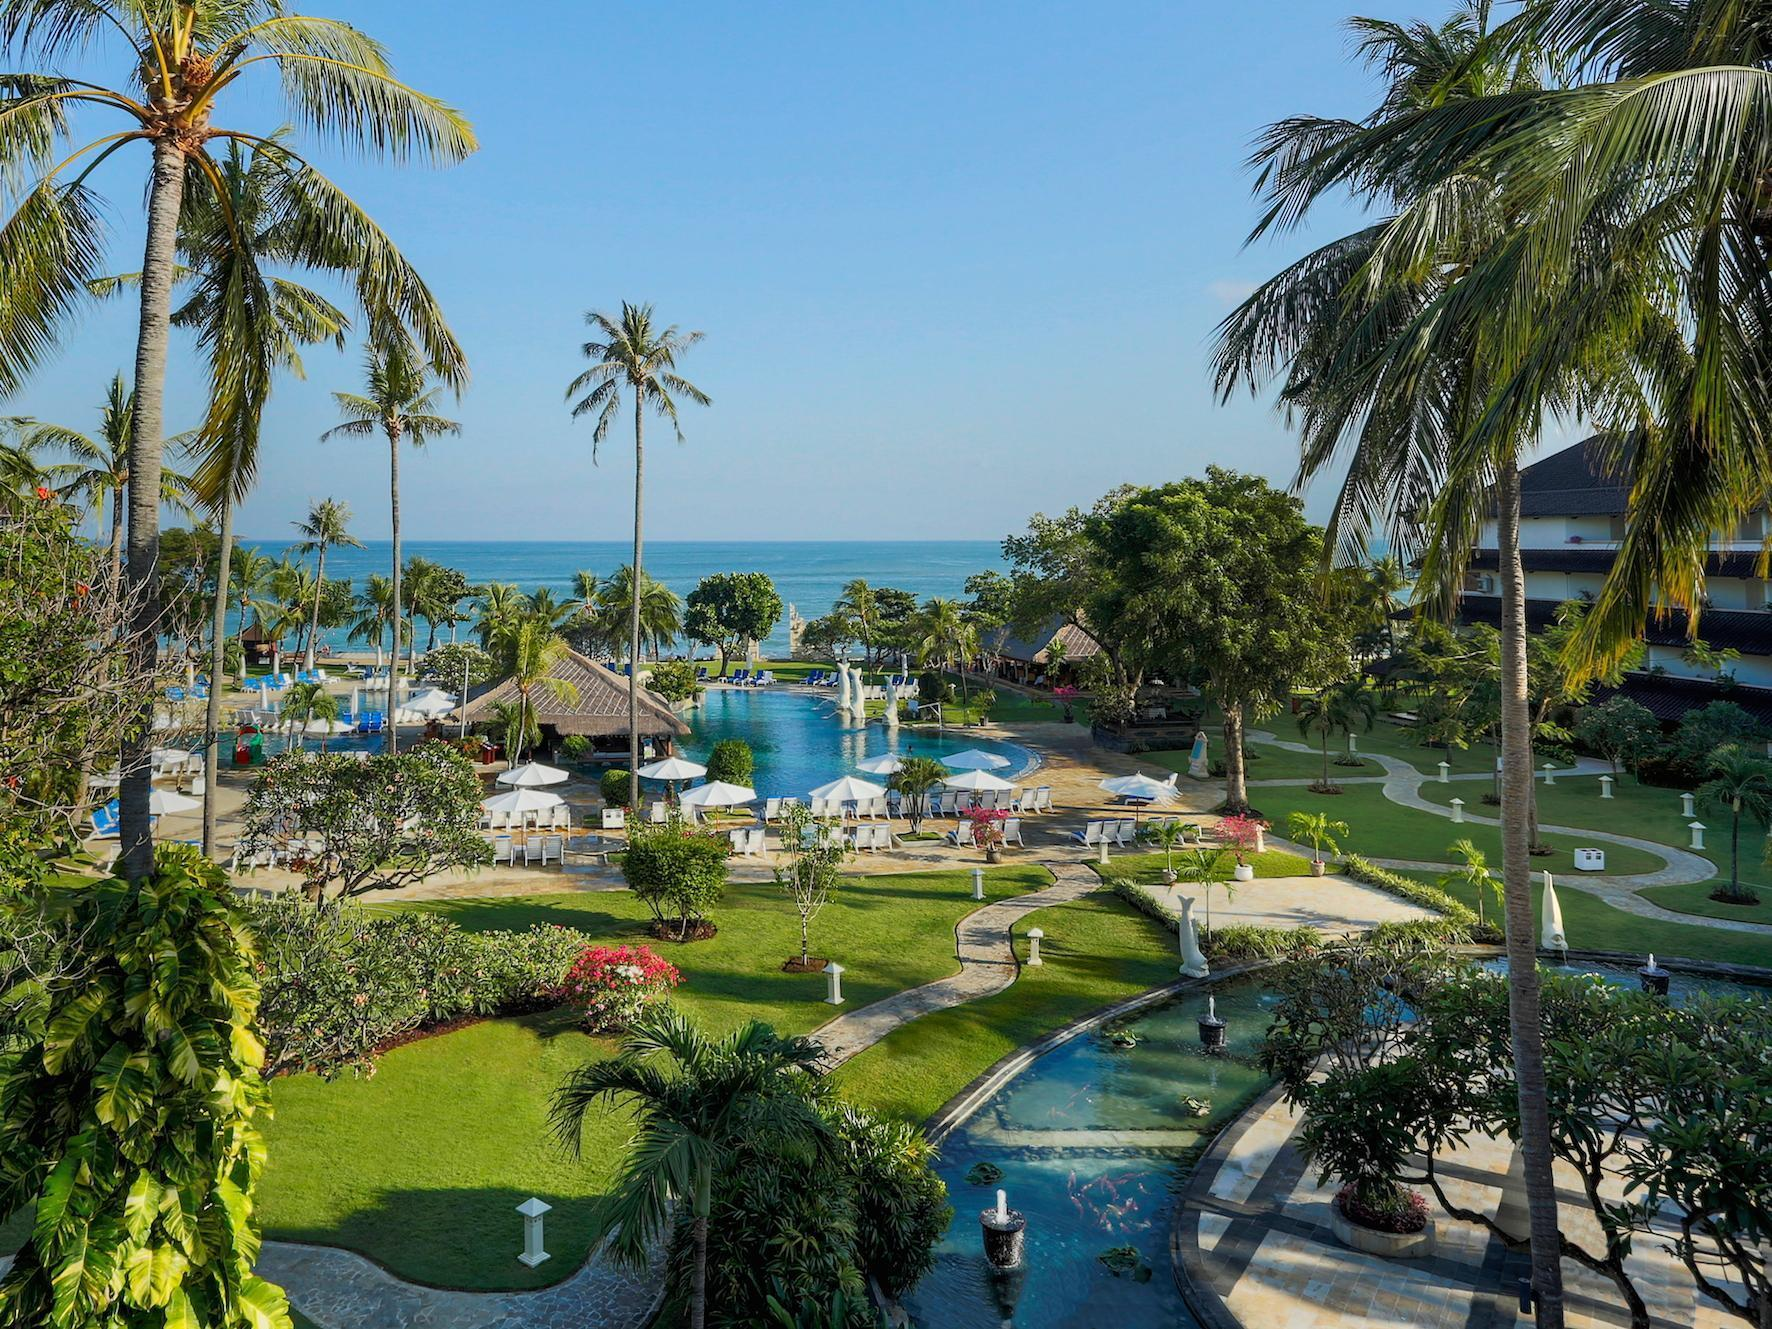 Discovery Kartika Plaza Hotel Bali Hotels Lets Go On A Trip By Tabi Coco Com Hotel Reservations For Hotels In Indonesia